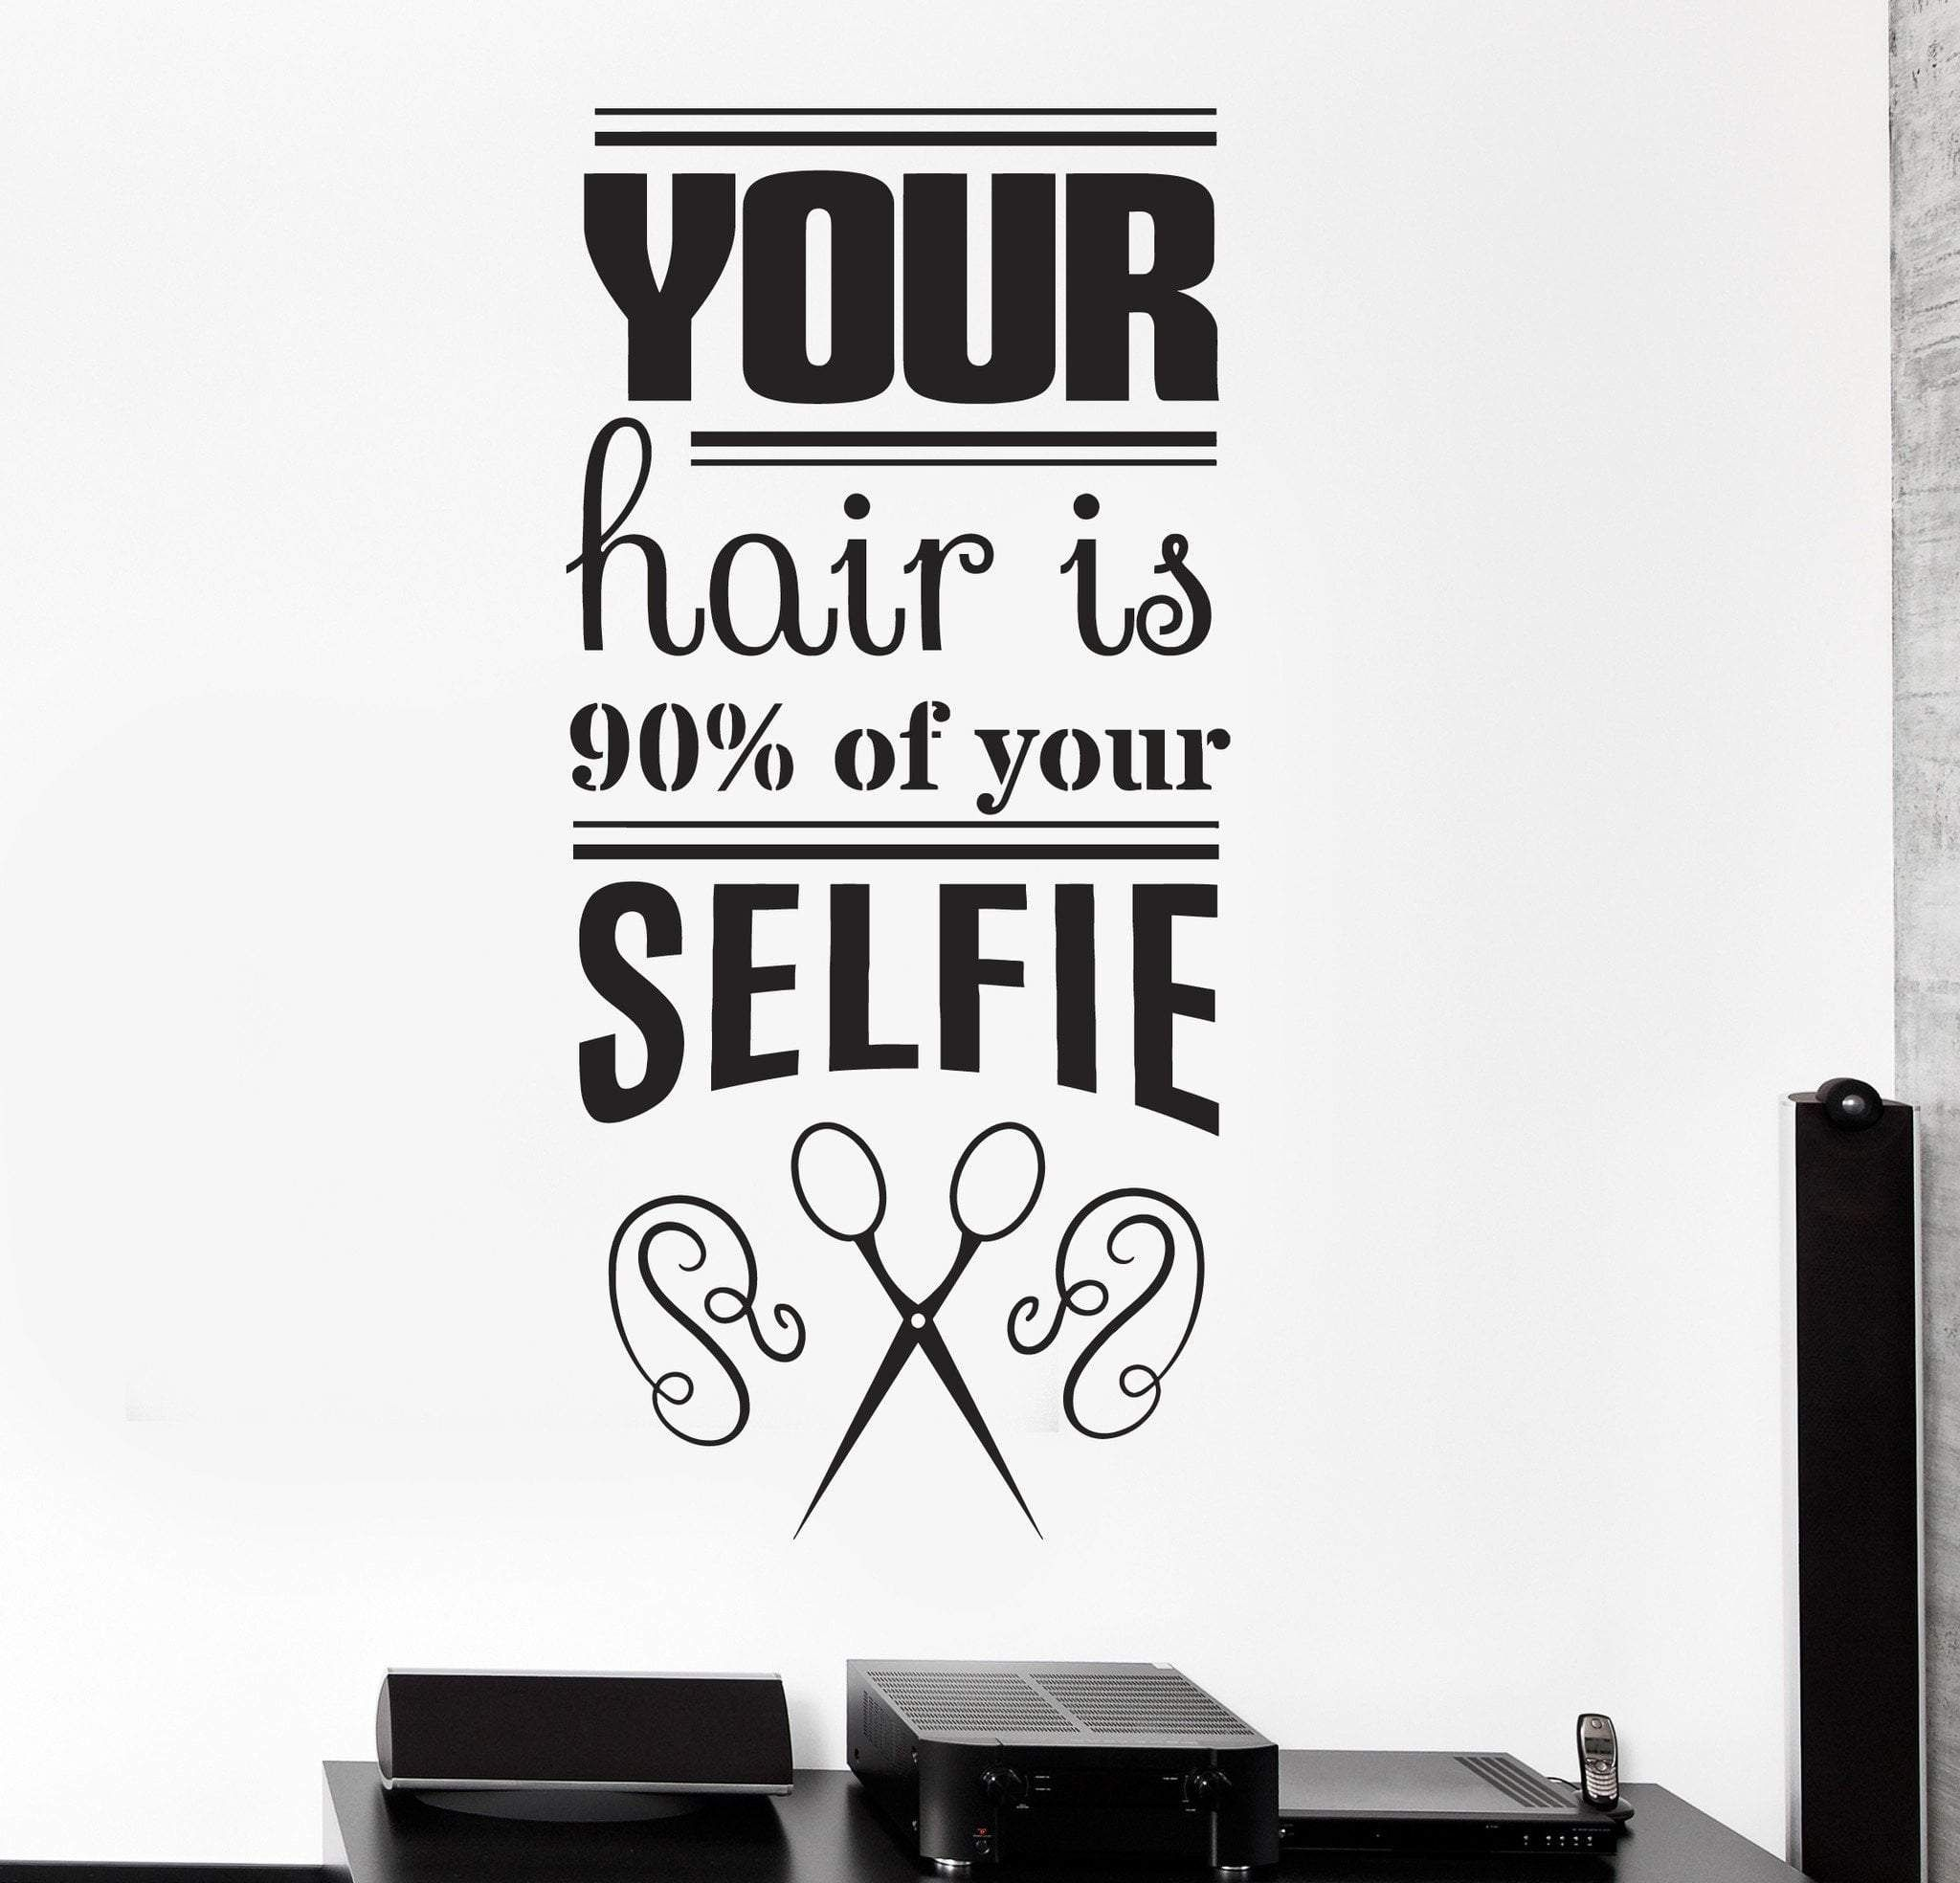 Vinyl Wall Decal Funny Hair Salon Quote Barbershop Stylist Stickers Unique Gift Ig4400 Hair Salon Quotes Salon Quotes Hair Salon Decor